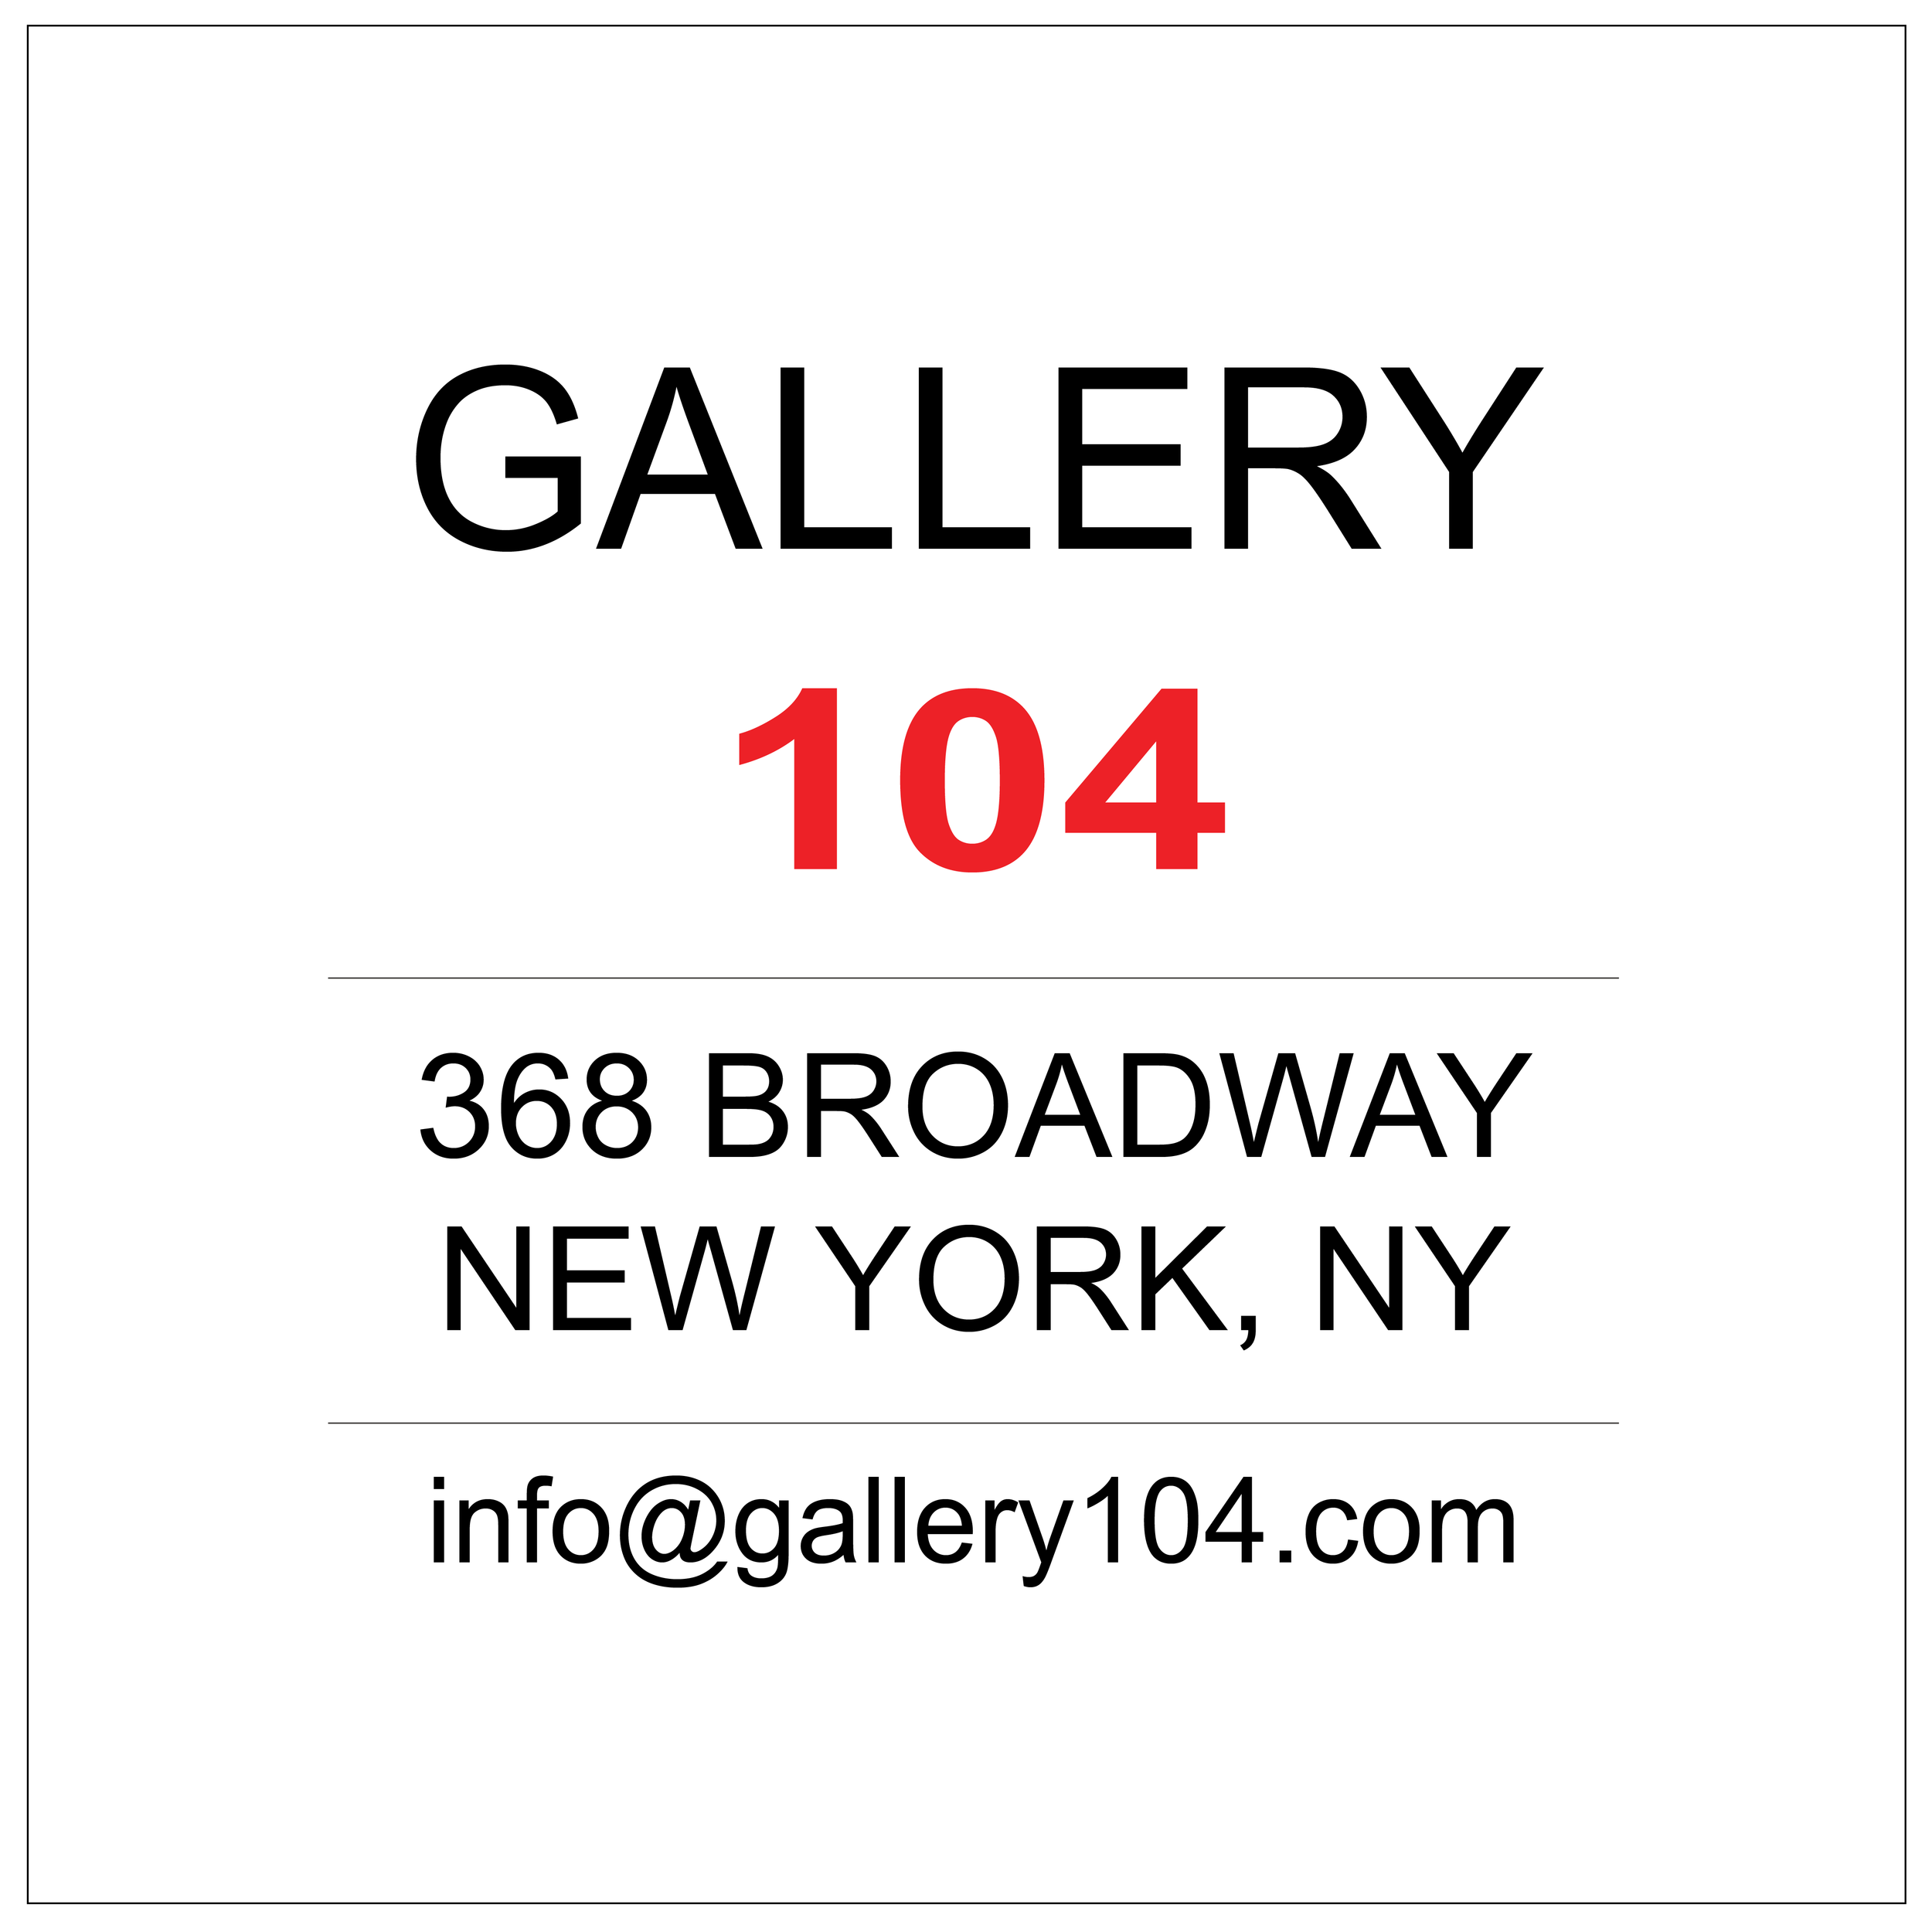 Gallery 104 NYC